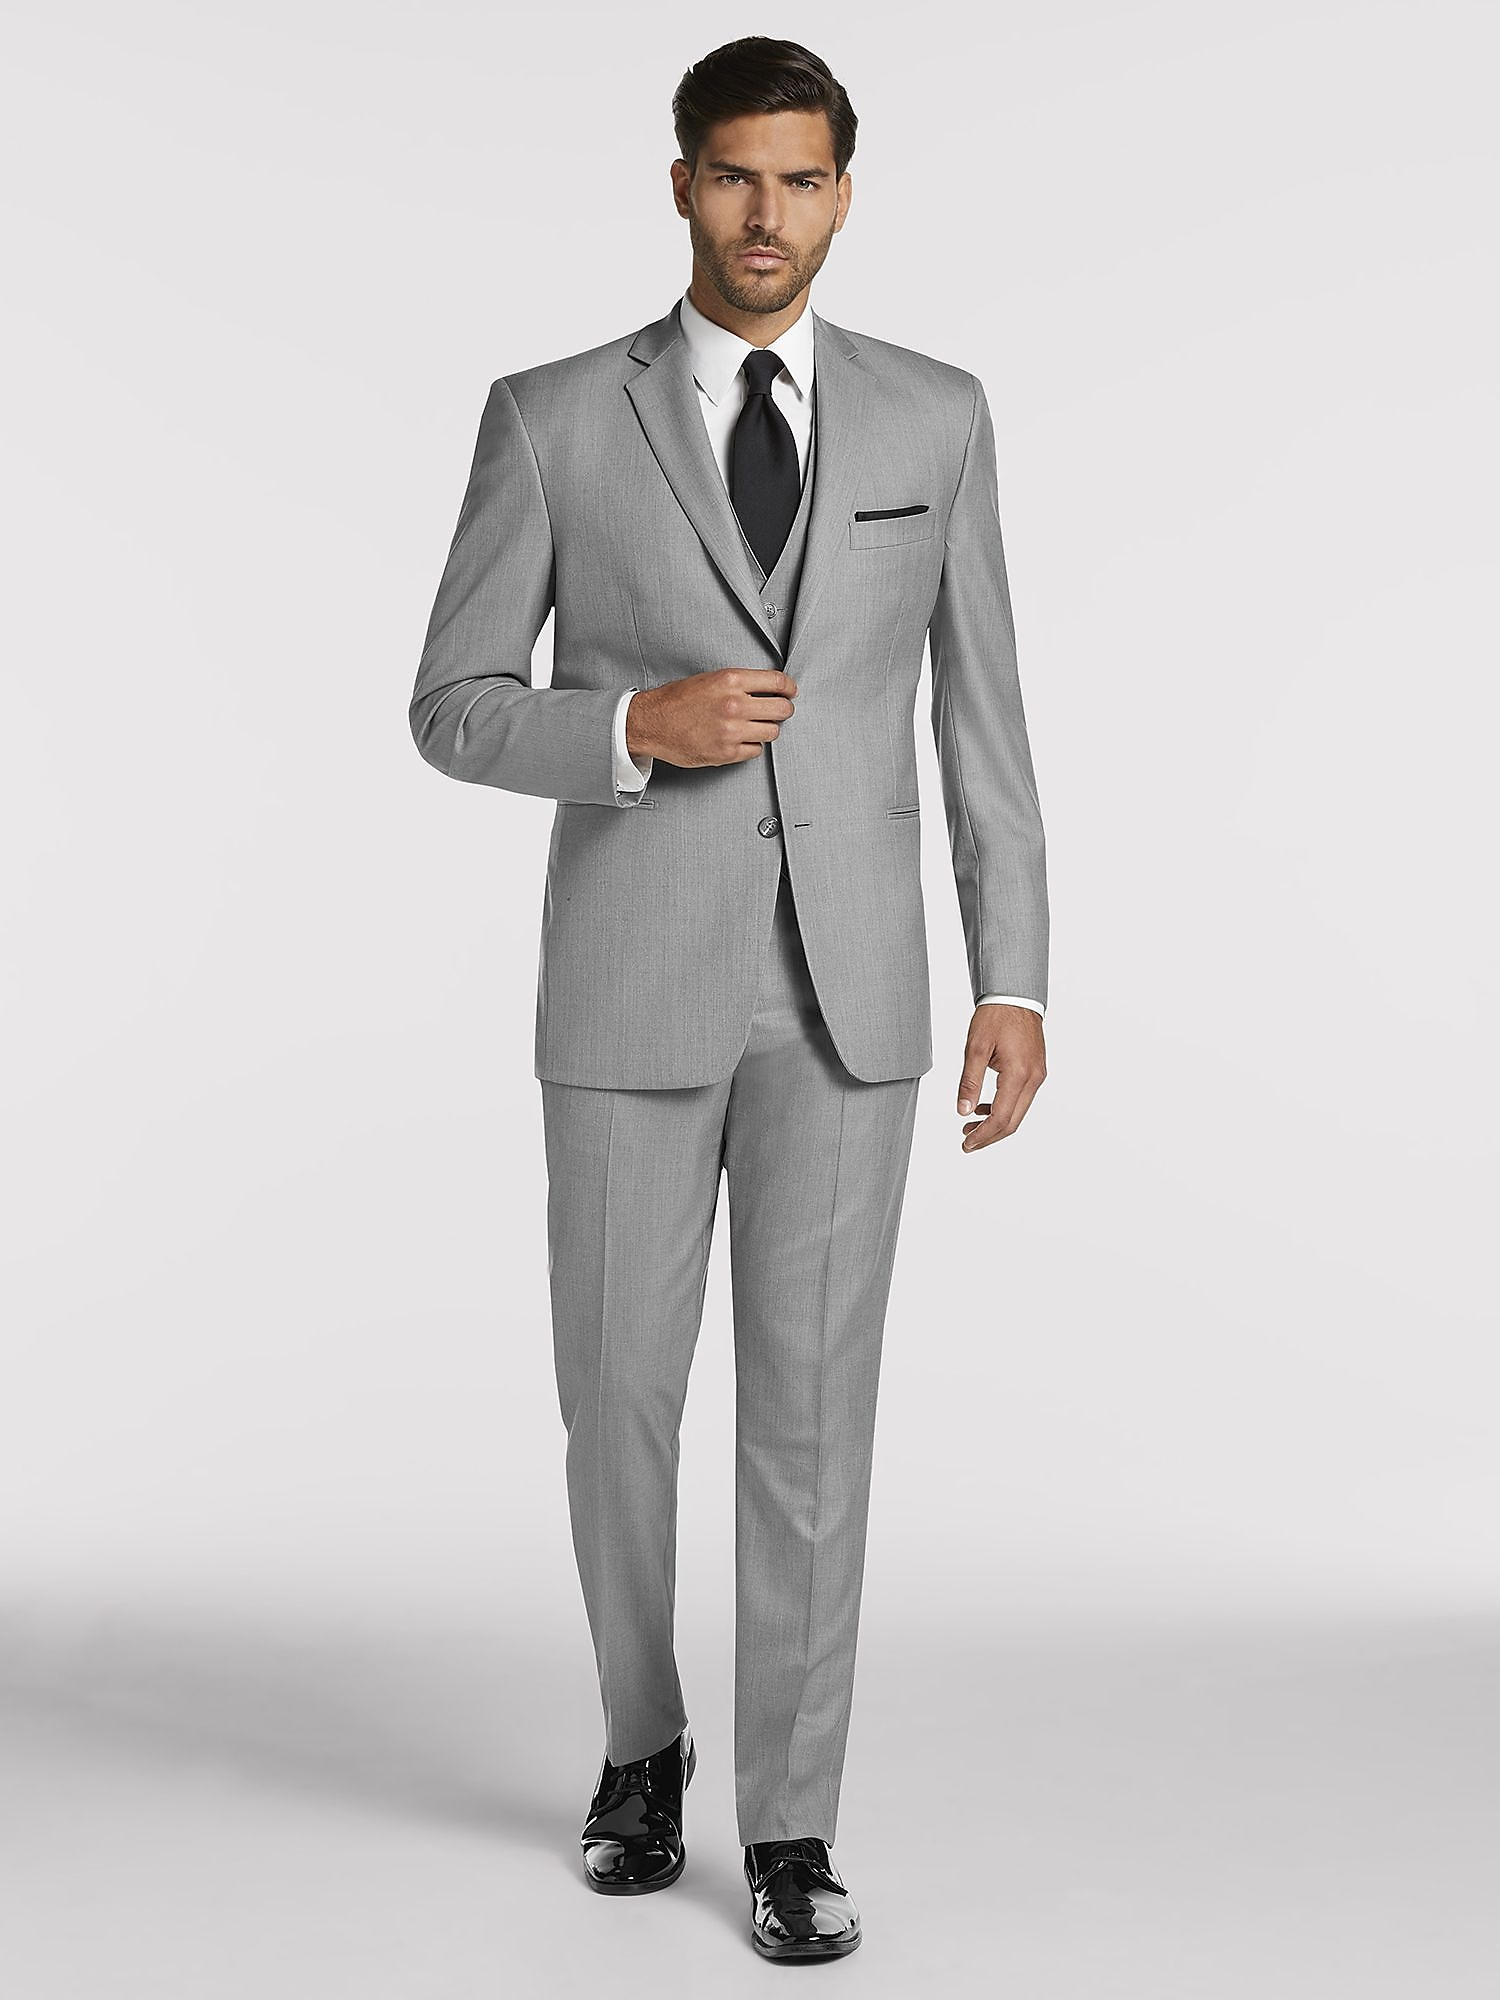 Mens Gray Suit R8ly